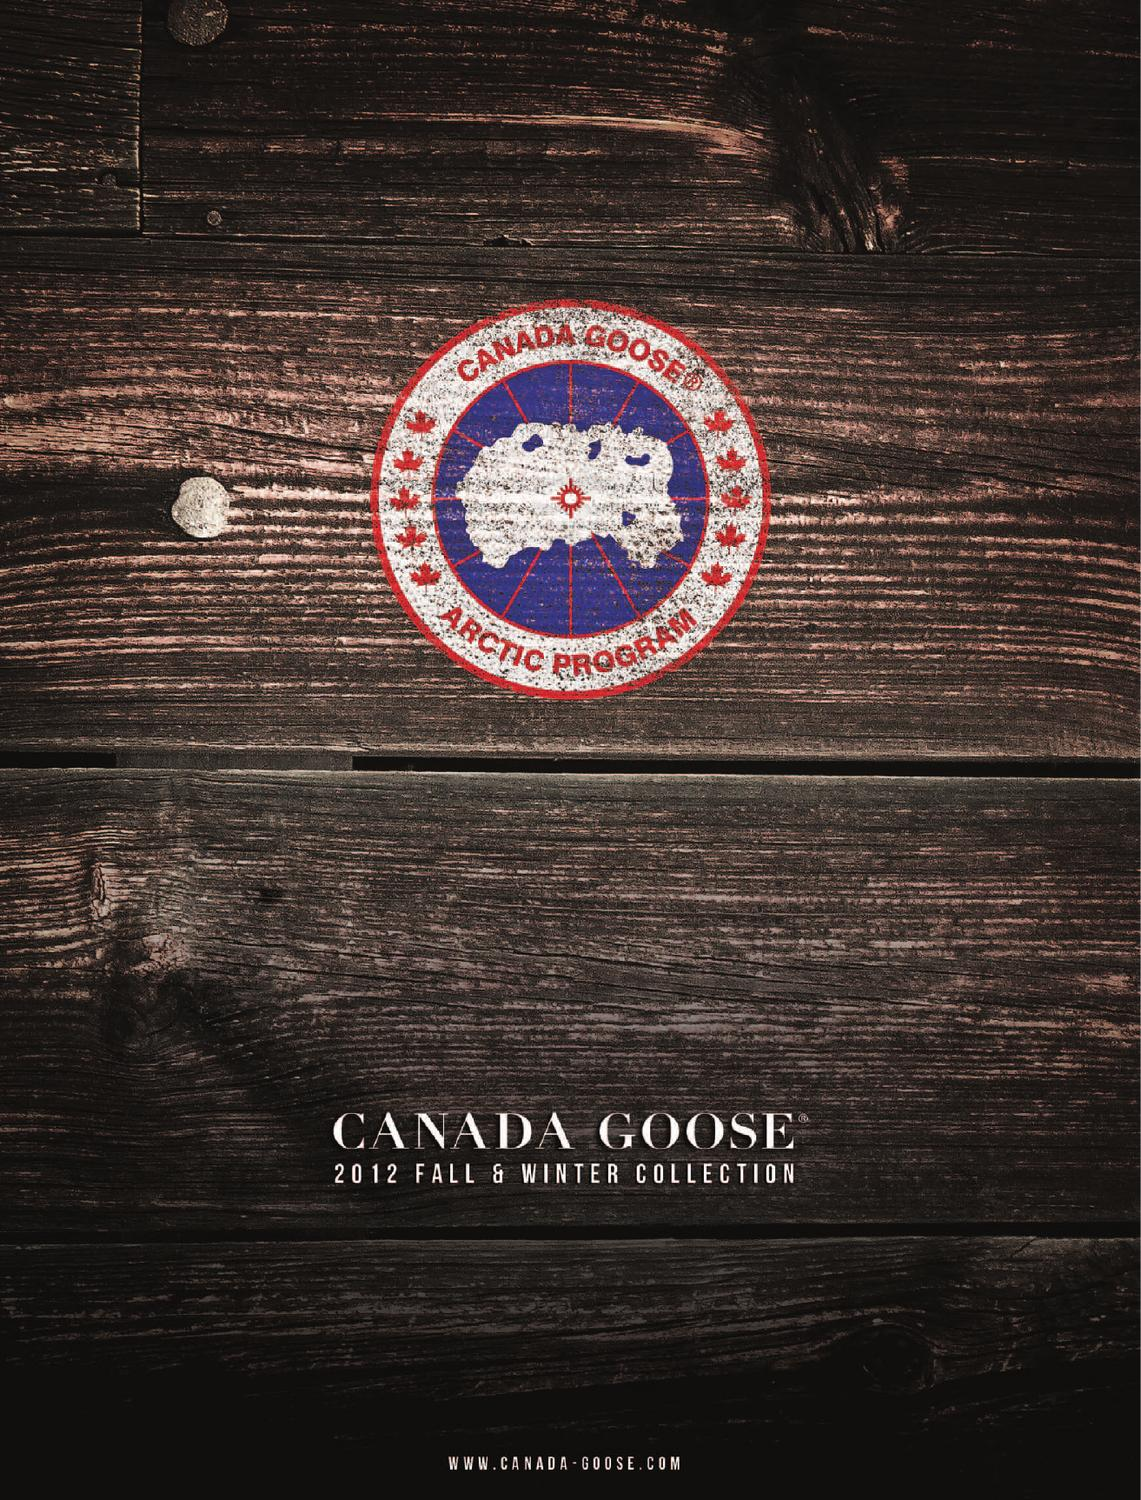 CANADA GOOSE Catalog 2013 by LEVELSPORTKONCEPT s.r.o. - issuu 87aff5659549